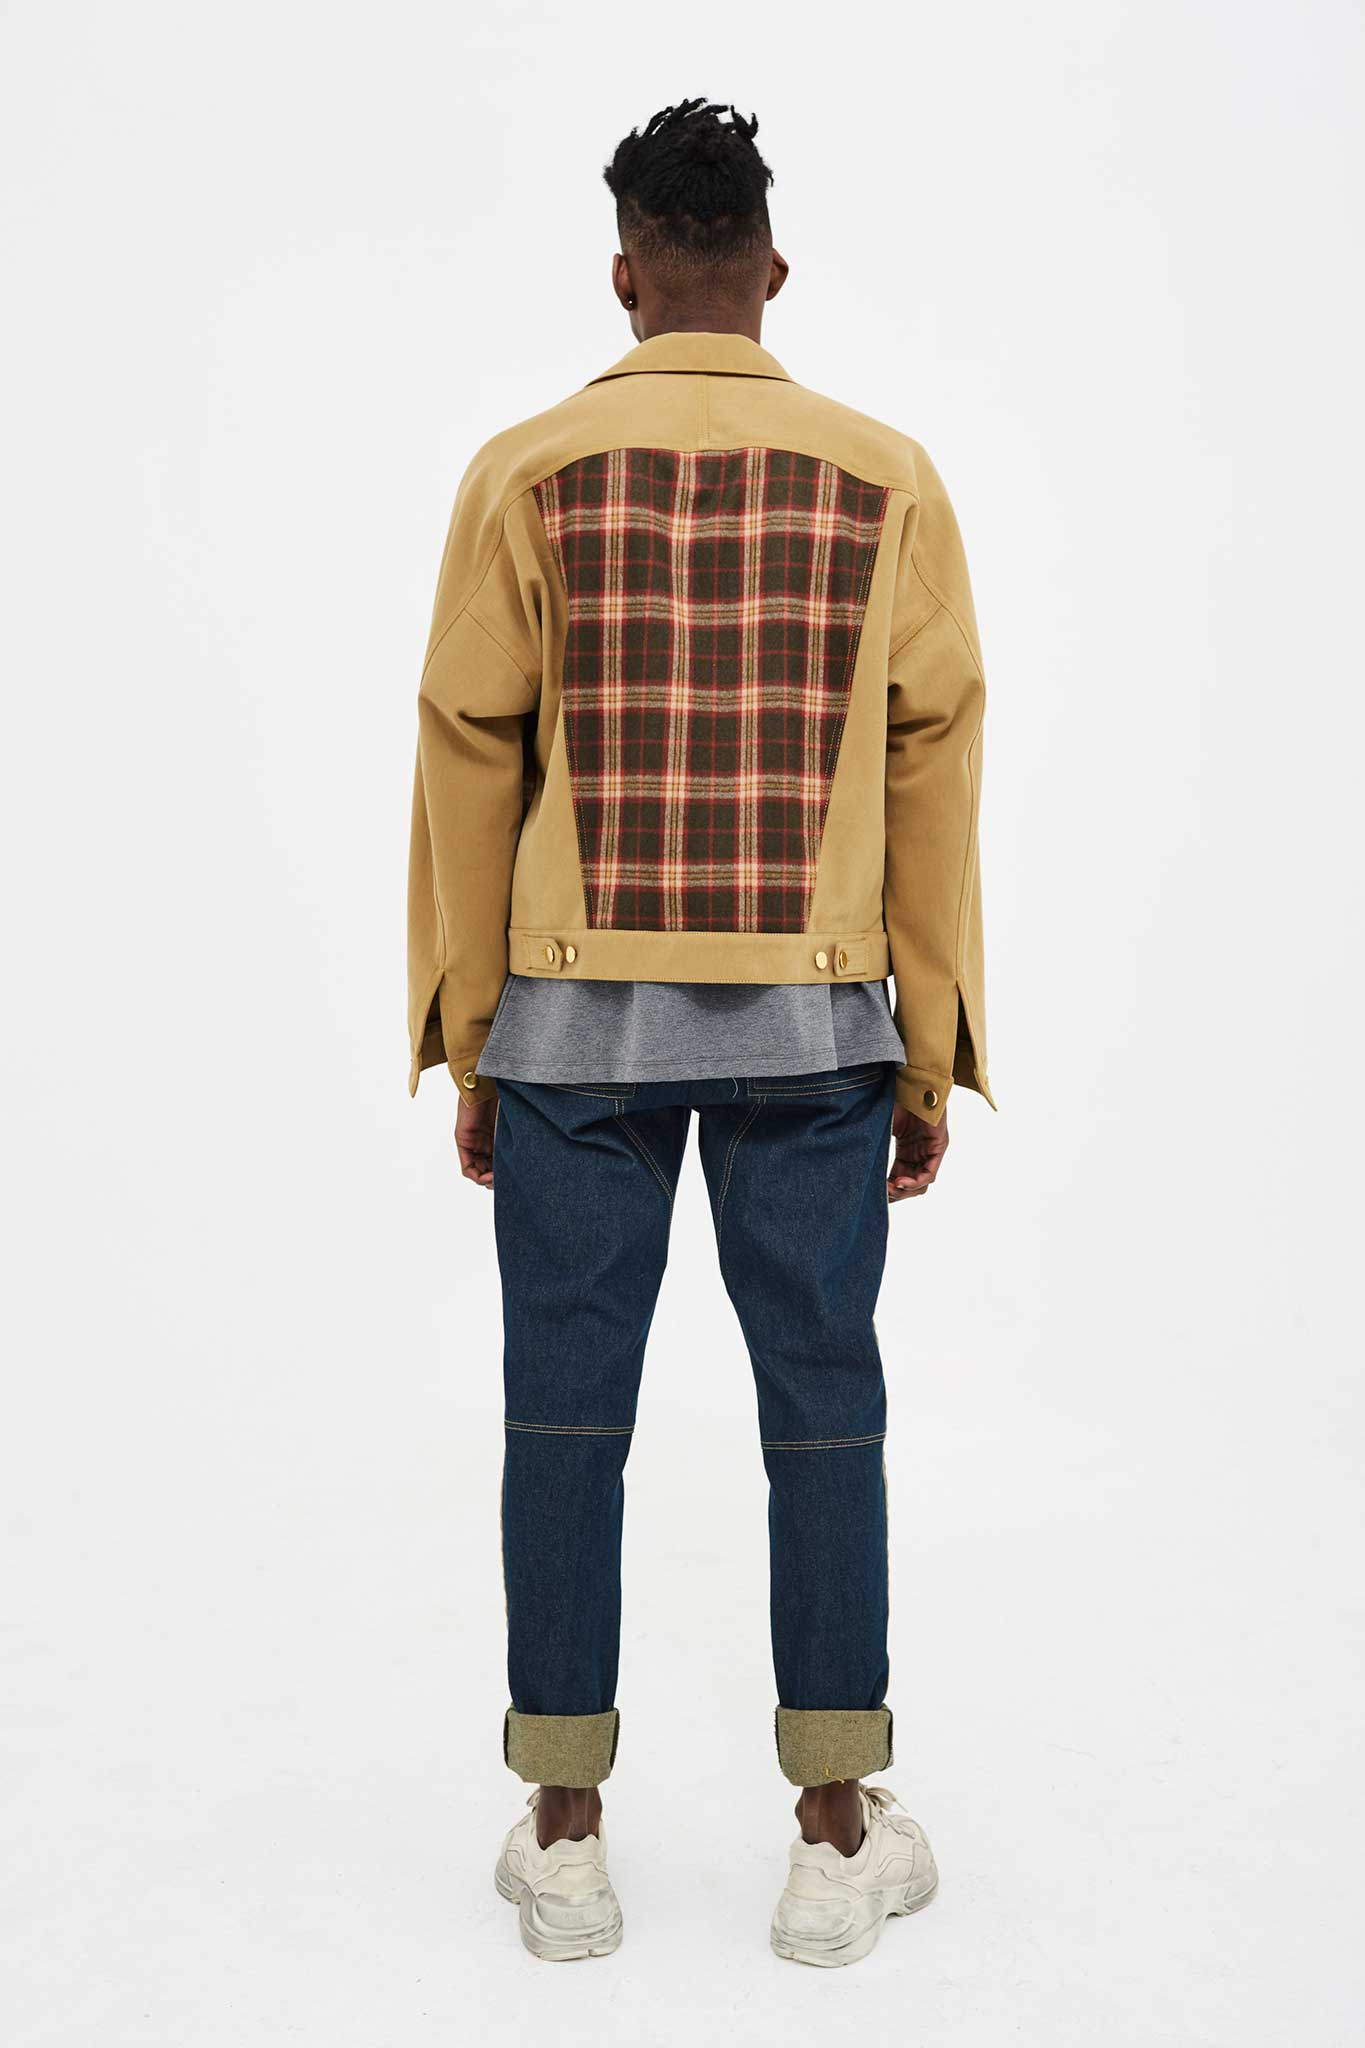 DENIM X TARTAN (GREEN) JACKET